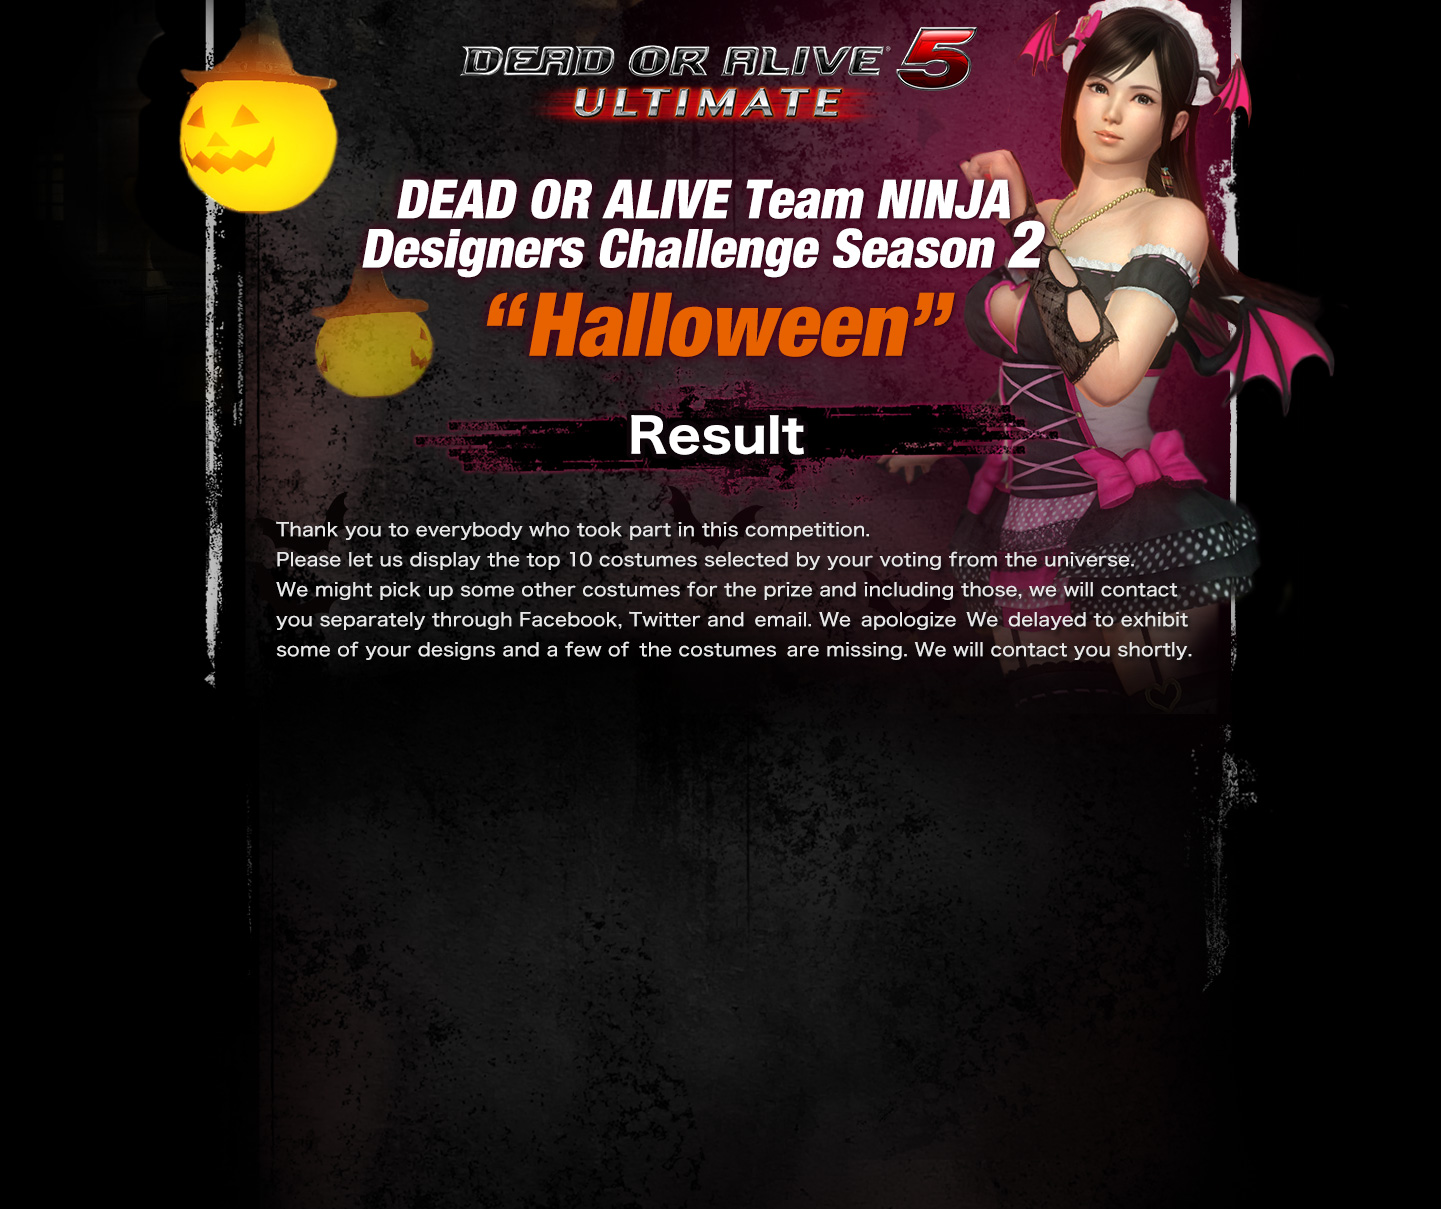 http://teamninja-studio.com/doa5/ultimate/us/dc2/img/main.jpg